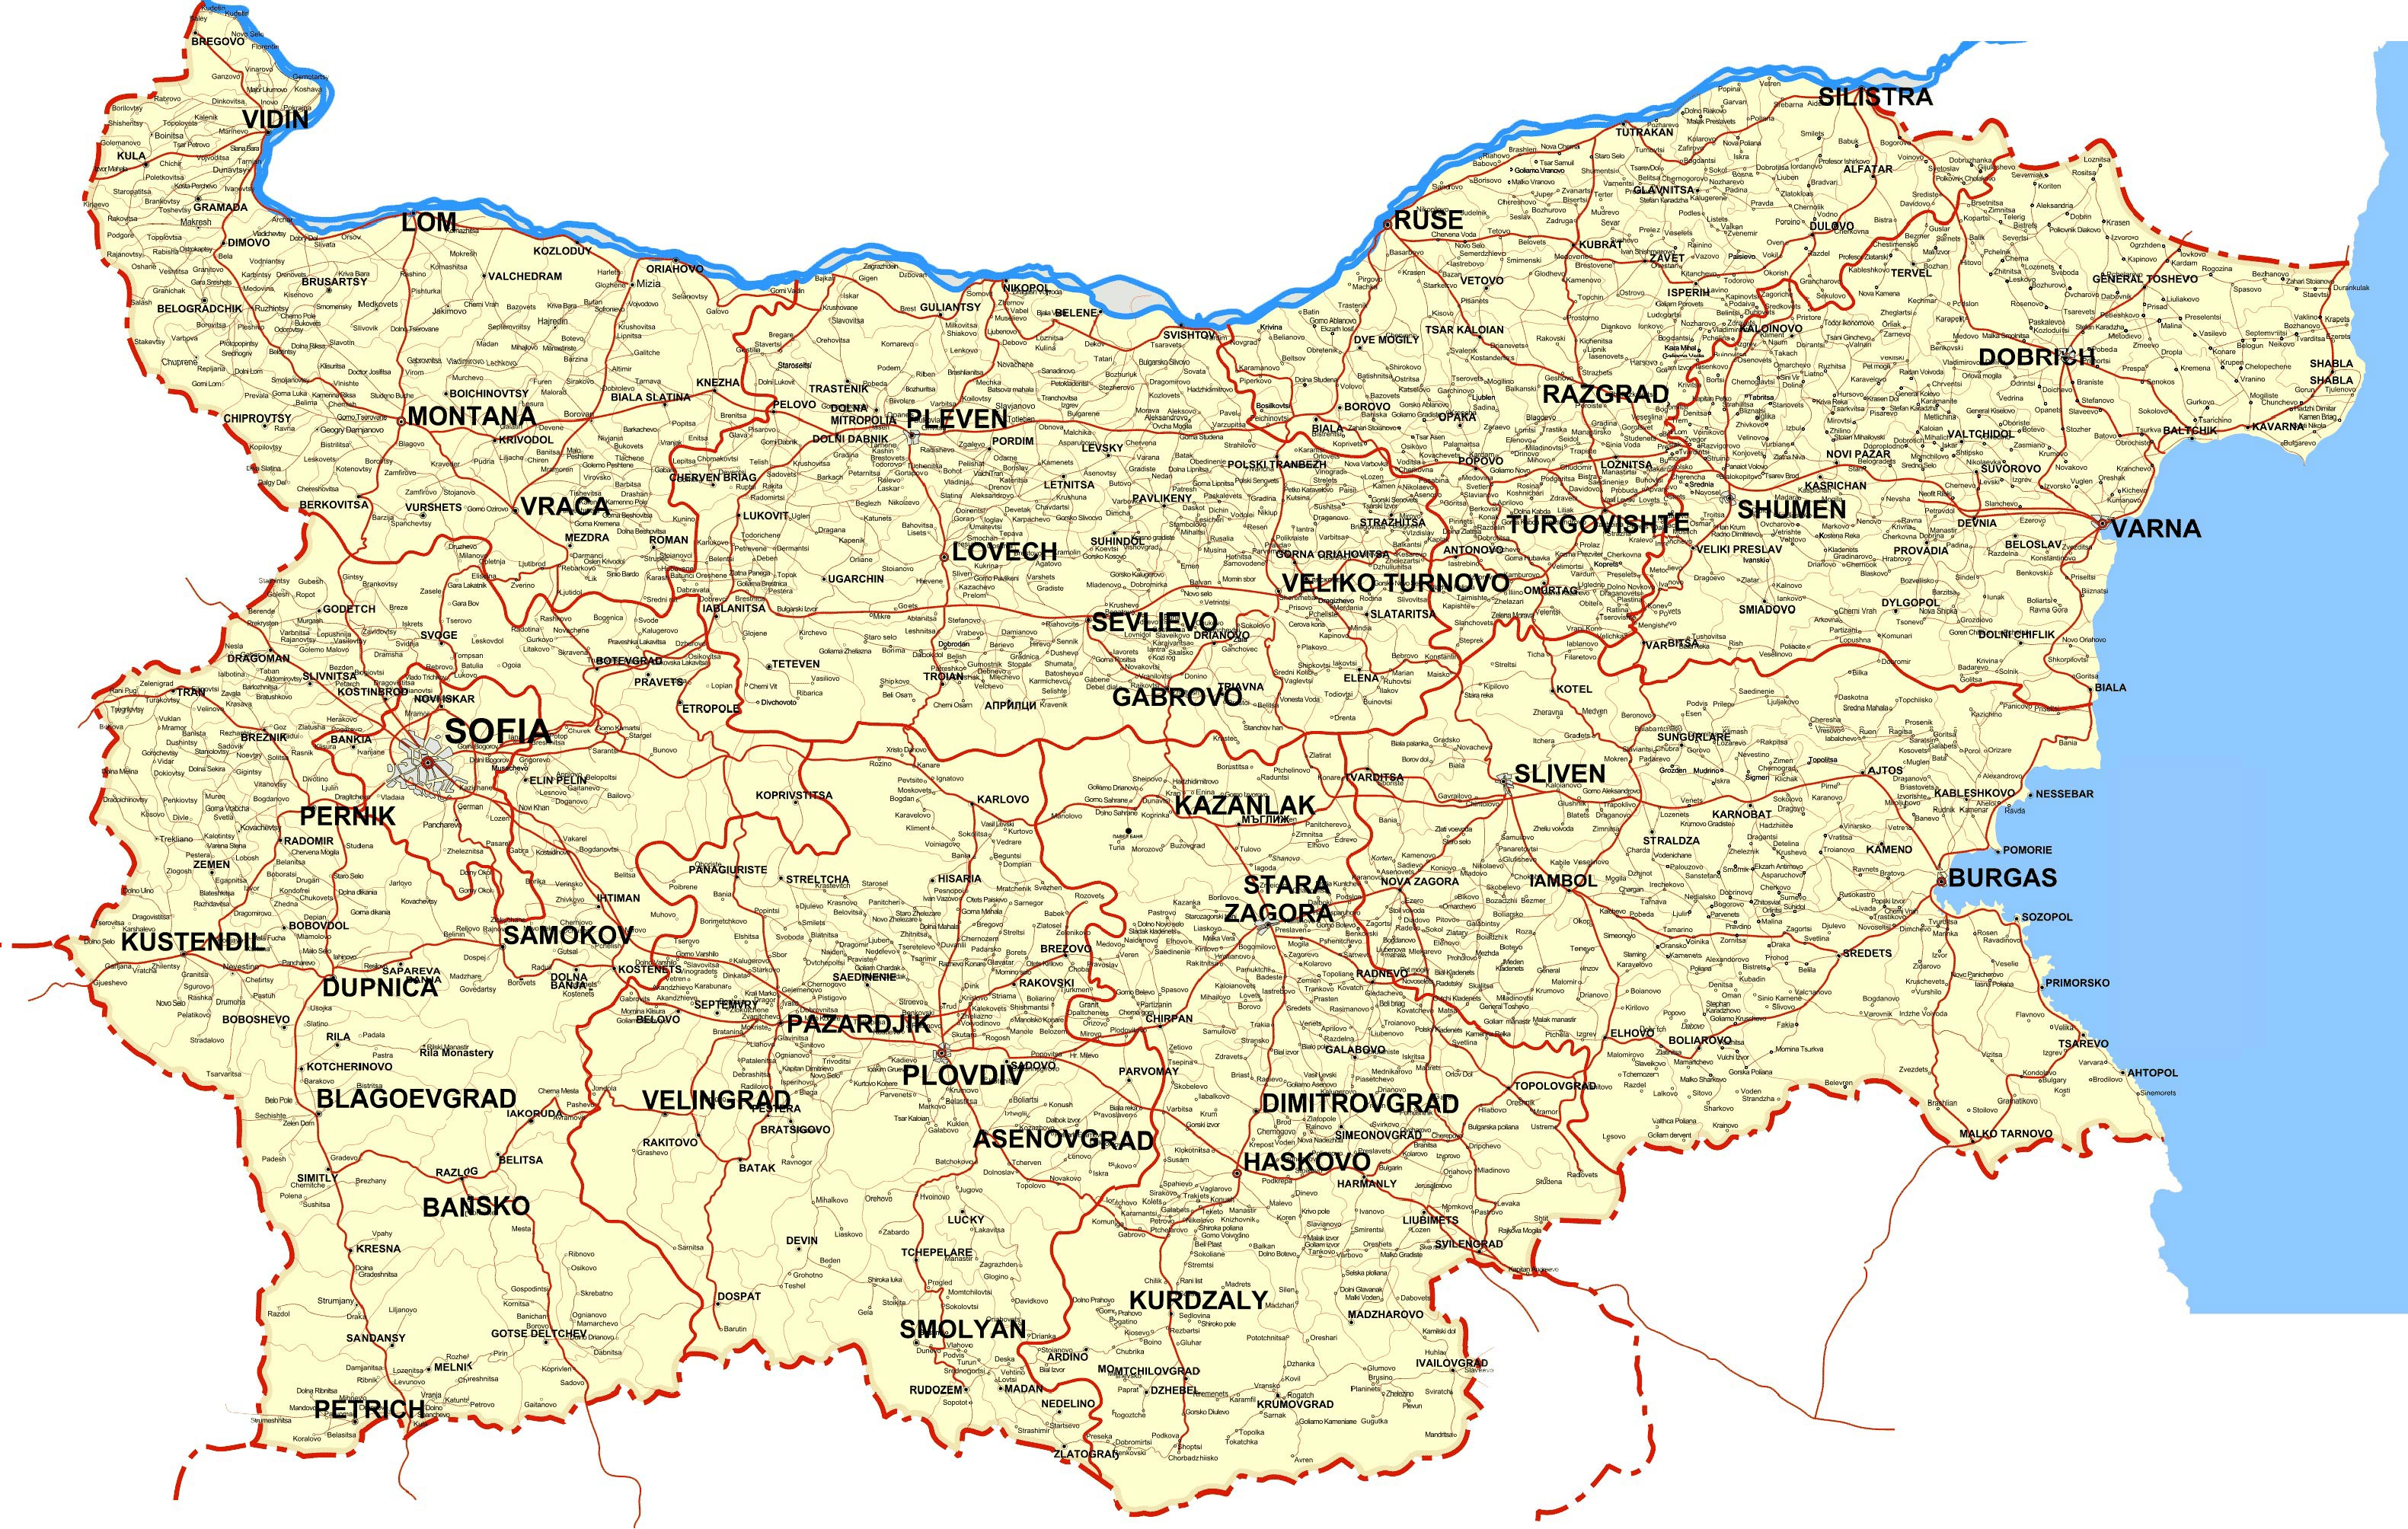 bulgaria mapa Bulgaria Maps | Printable Maps of Bulgaria for Download bulgaria mapa